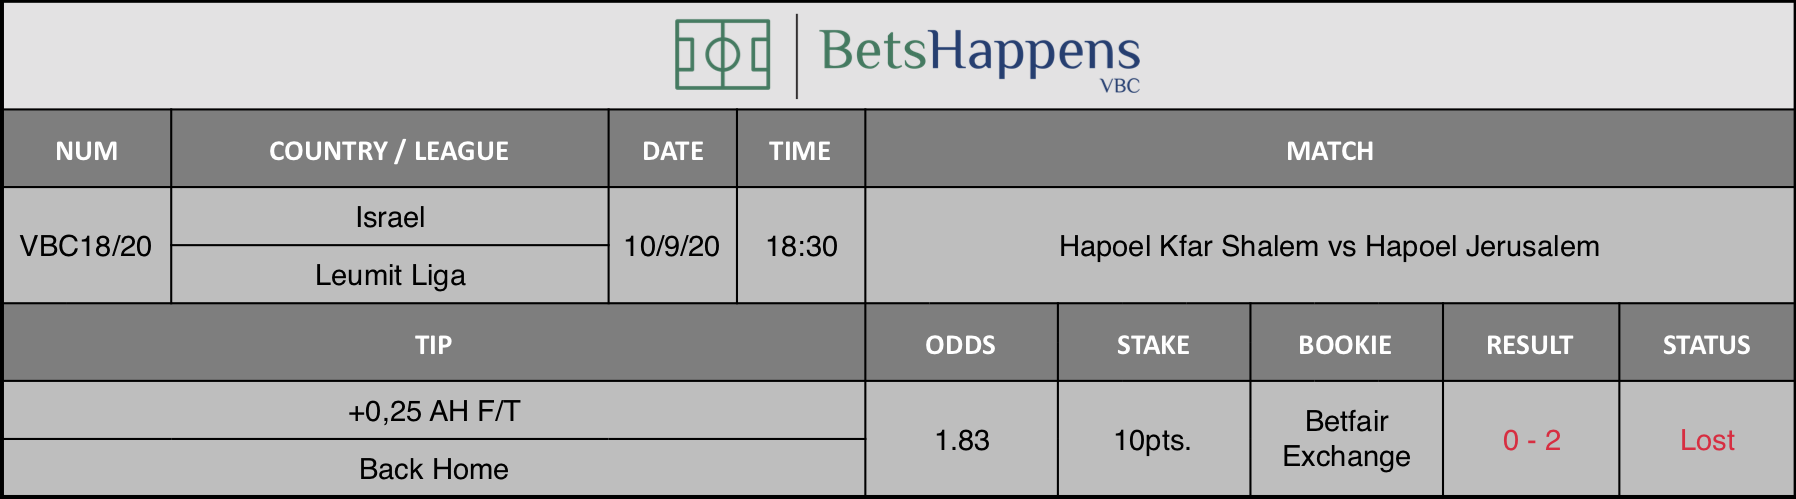 Results of our advice for the Hapoel Kfar Shalem vs Hapoel Jerusalem match in which +0.25 AH F / T Back Home is recommended.